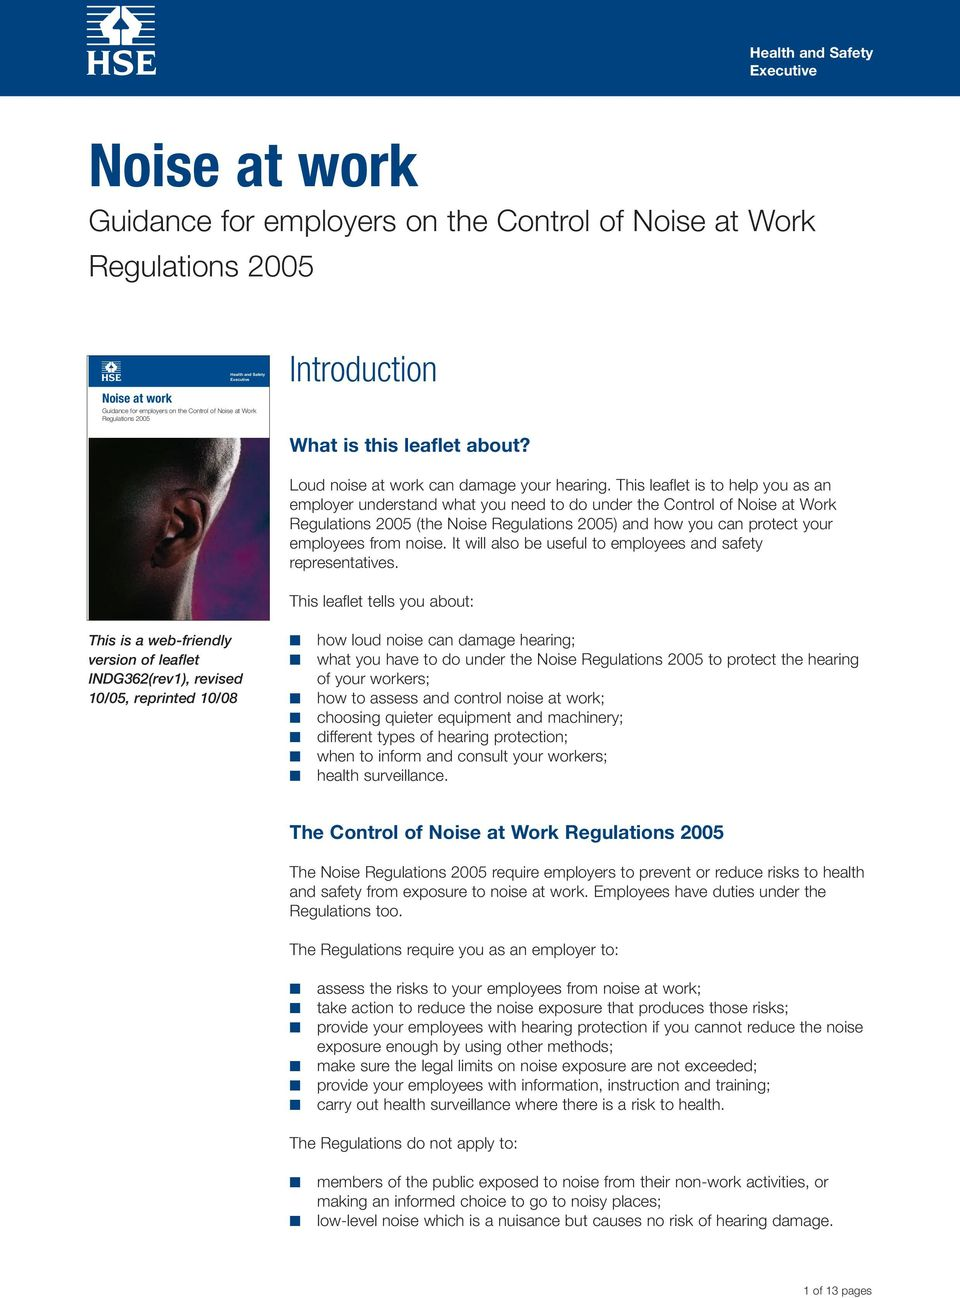 This leaflet is to help you as an employer understand what you need to do under the Control of Noise at Work Regulations 2005 (the Noise Regulations 2005) and how you can protect your employees from